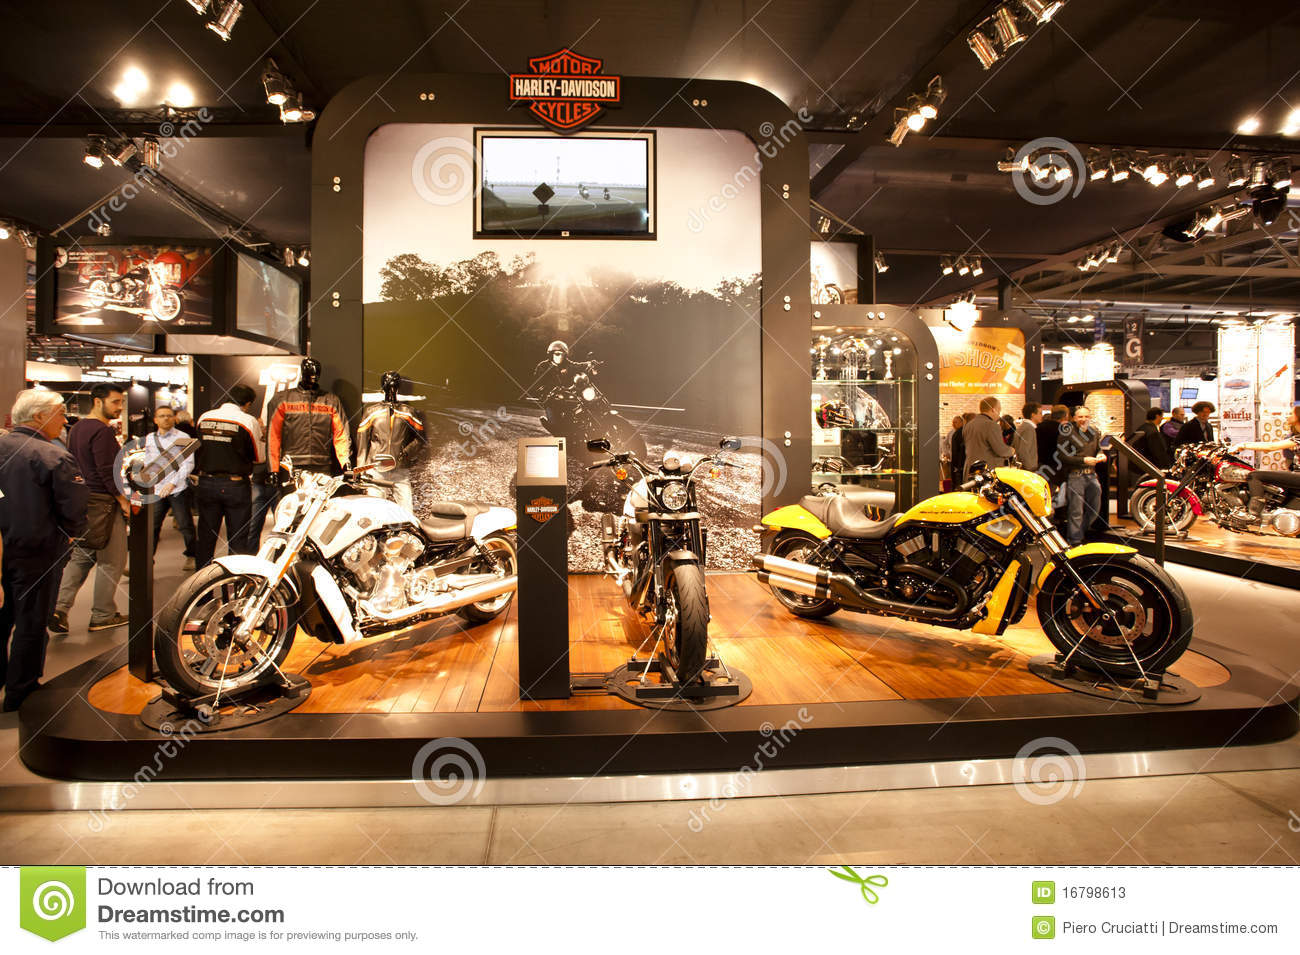 Exhibition Booth Vector Free Download : Eicma harley davidson editorial stock photo image